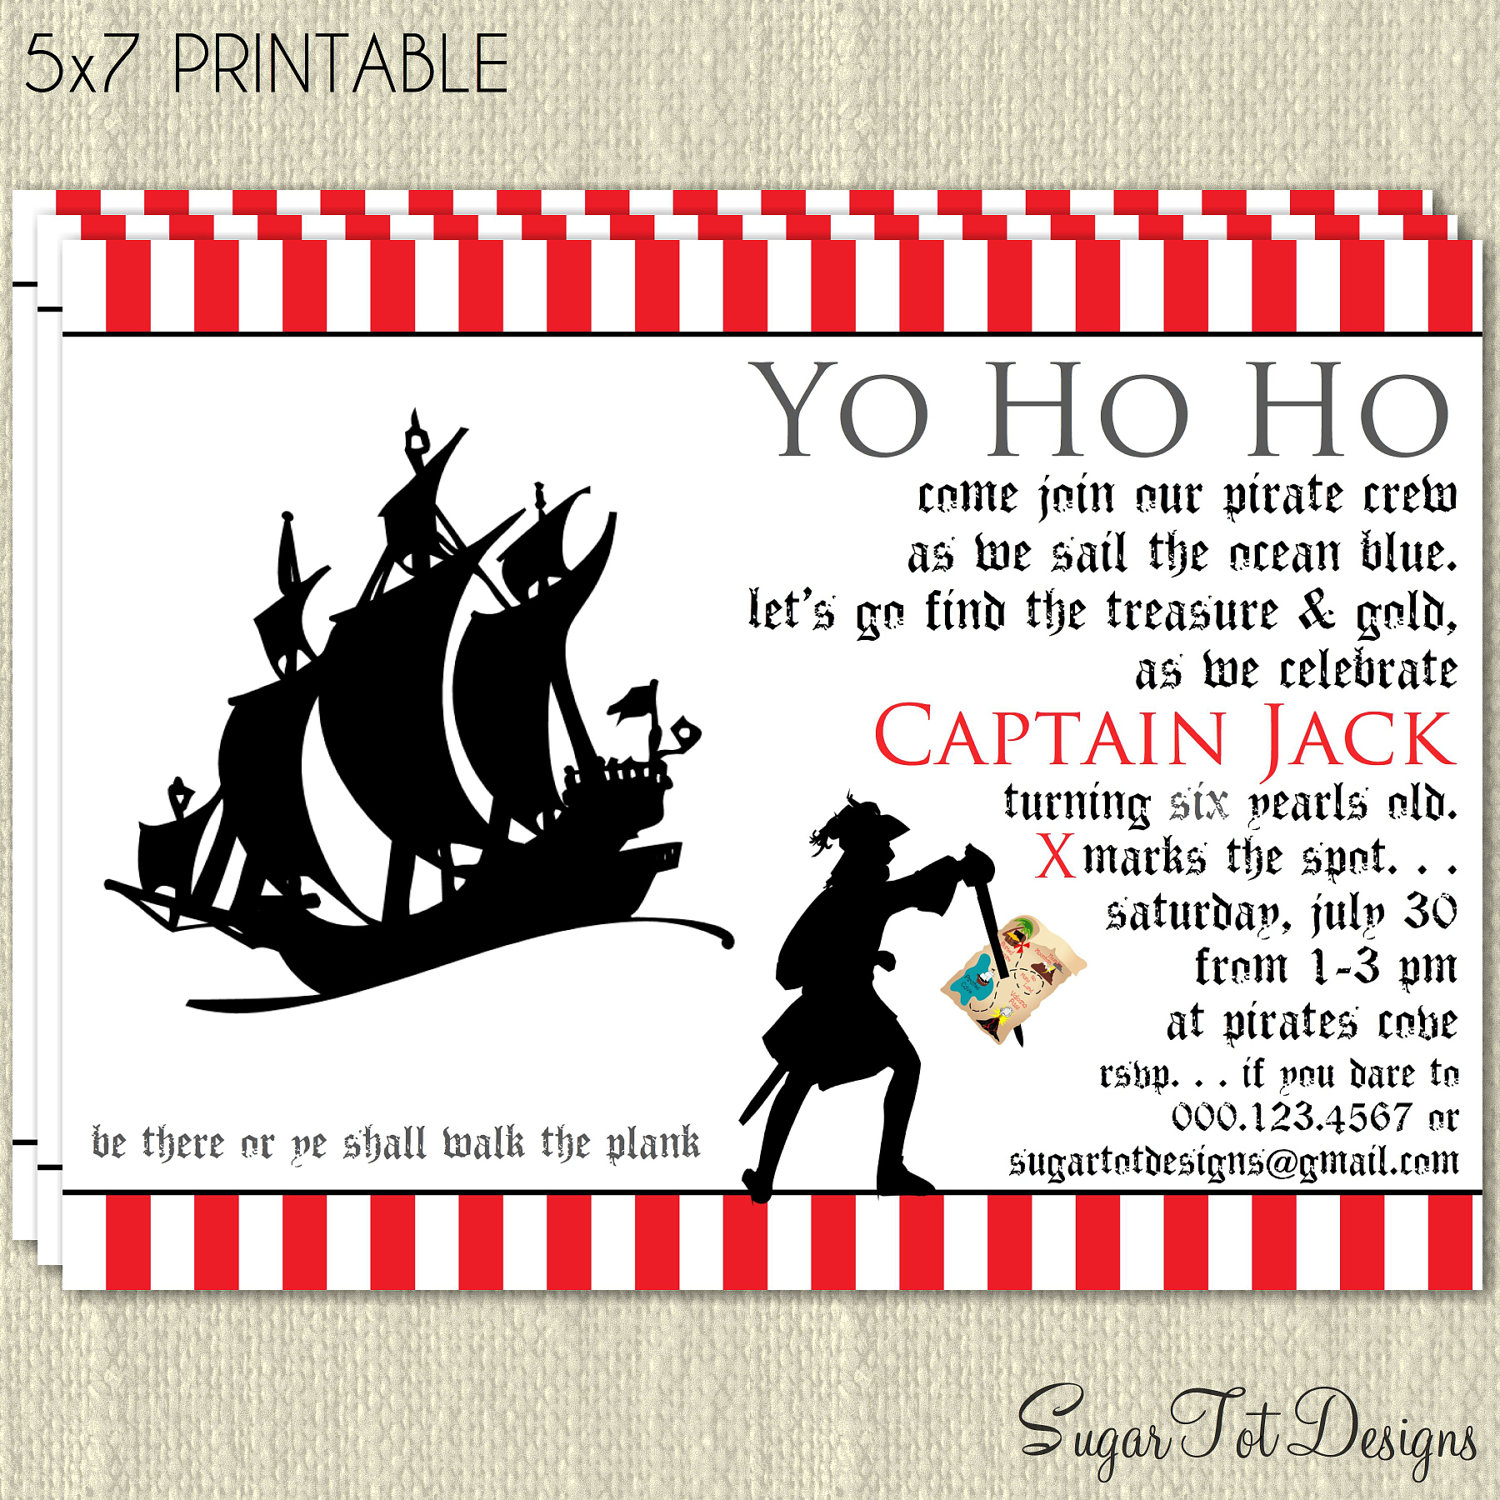 pirate themed birthday party invitation ideas ; 557ff2dfaaaba04c094b01f7dfaea962